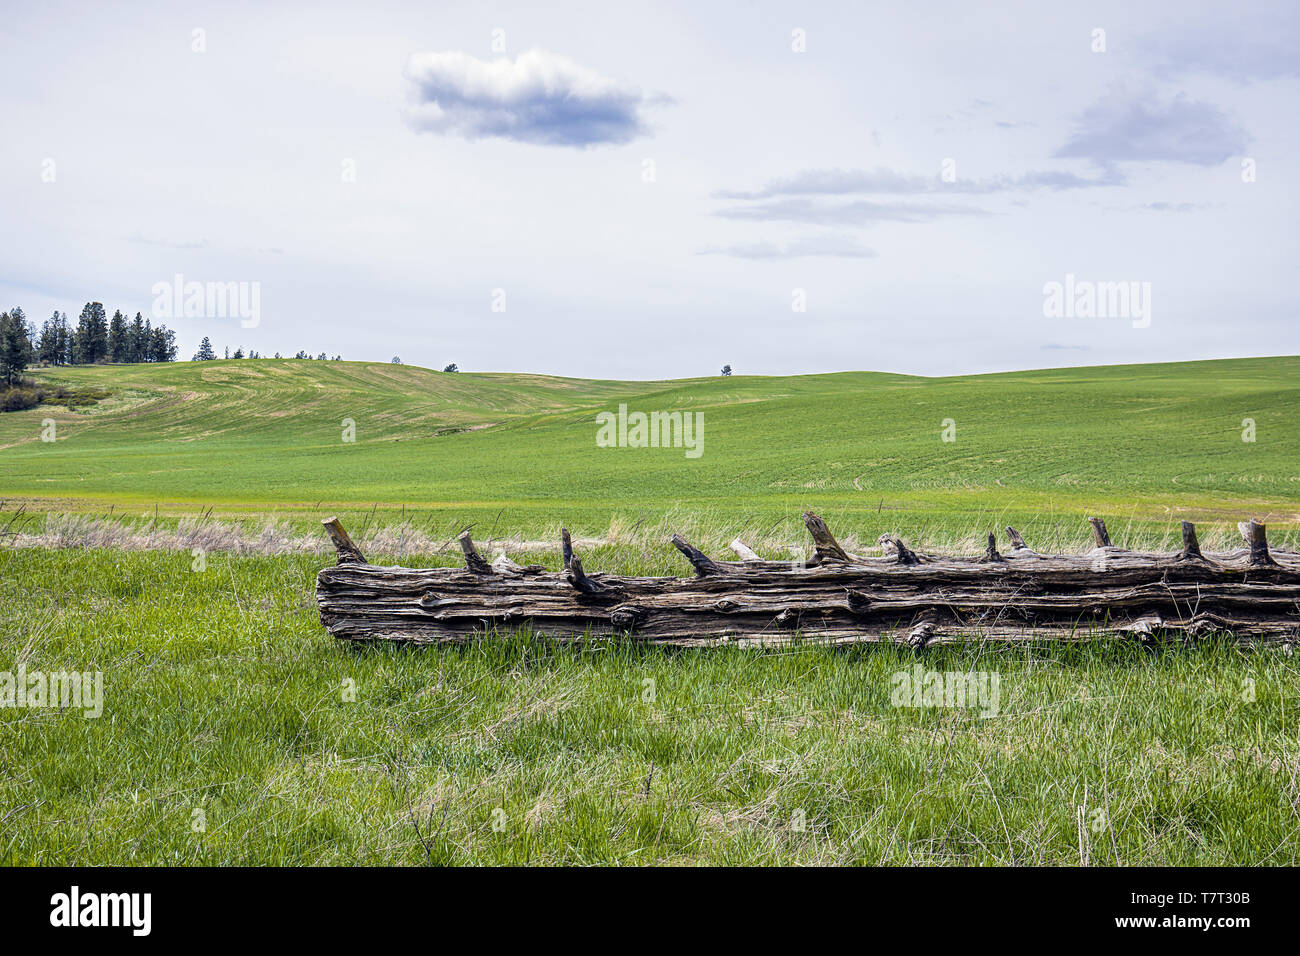 A fallen log lays in the foreground of a large grassy field in eastern Washington. Stock Photo